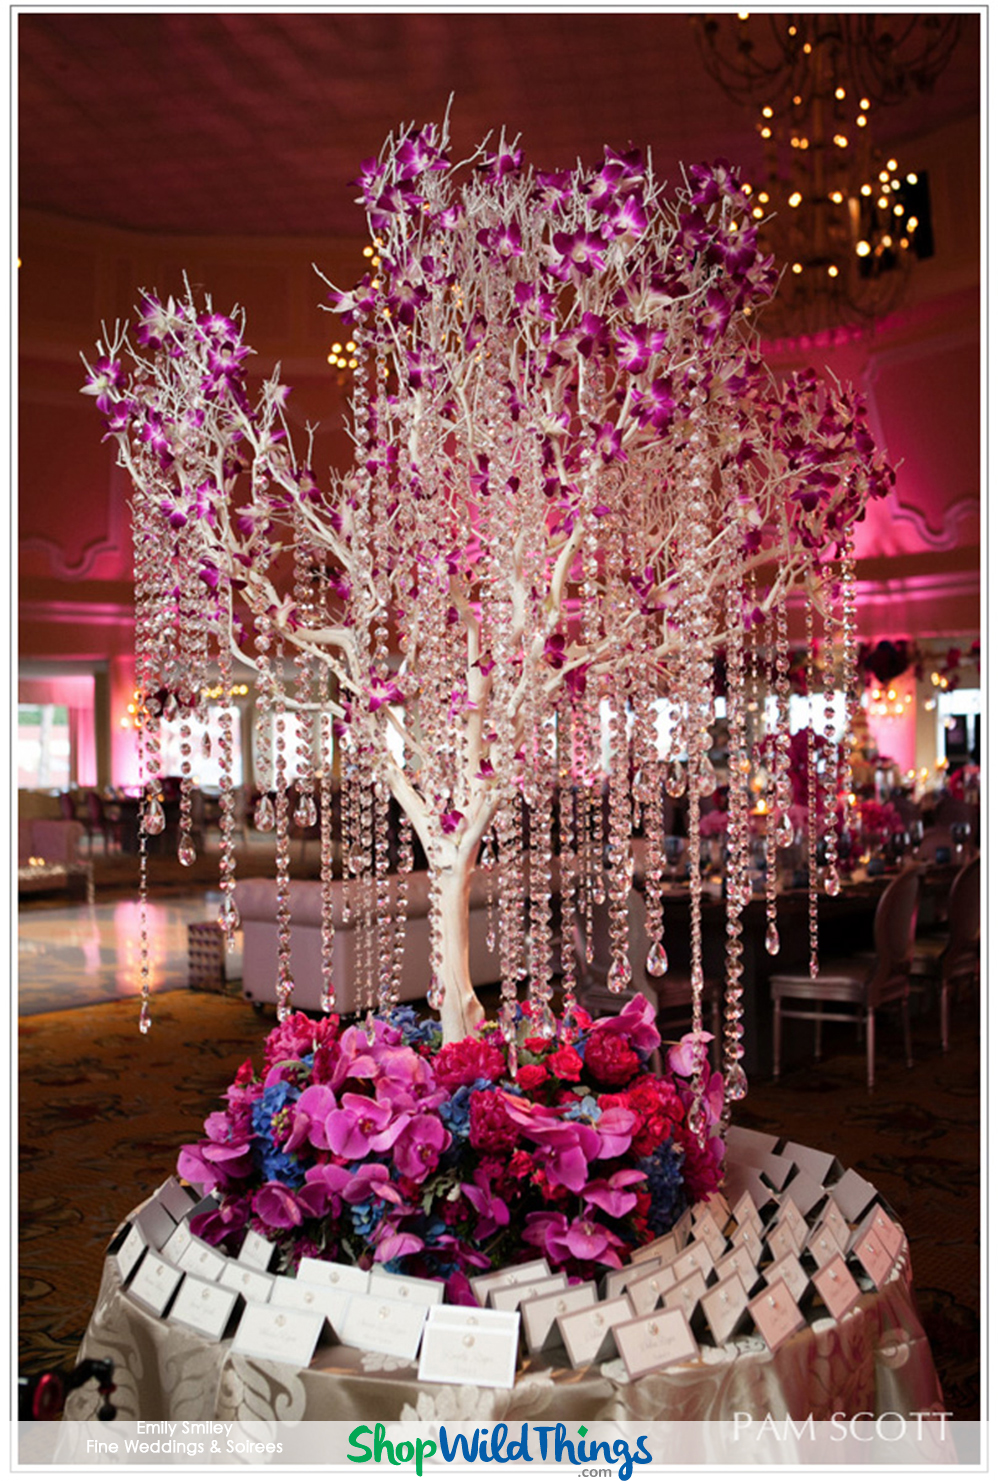 How to Decorate a Luxury Beach Wedding with Crystals & Chandeliers